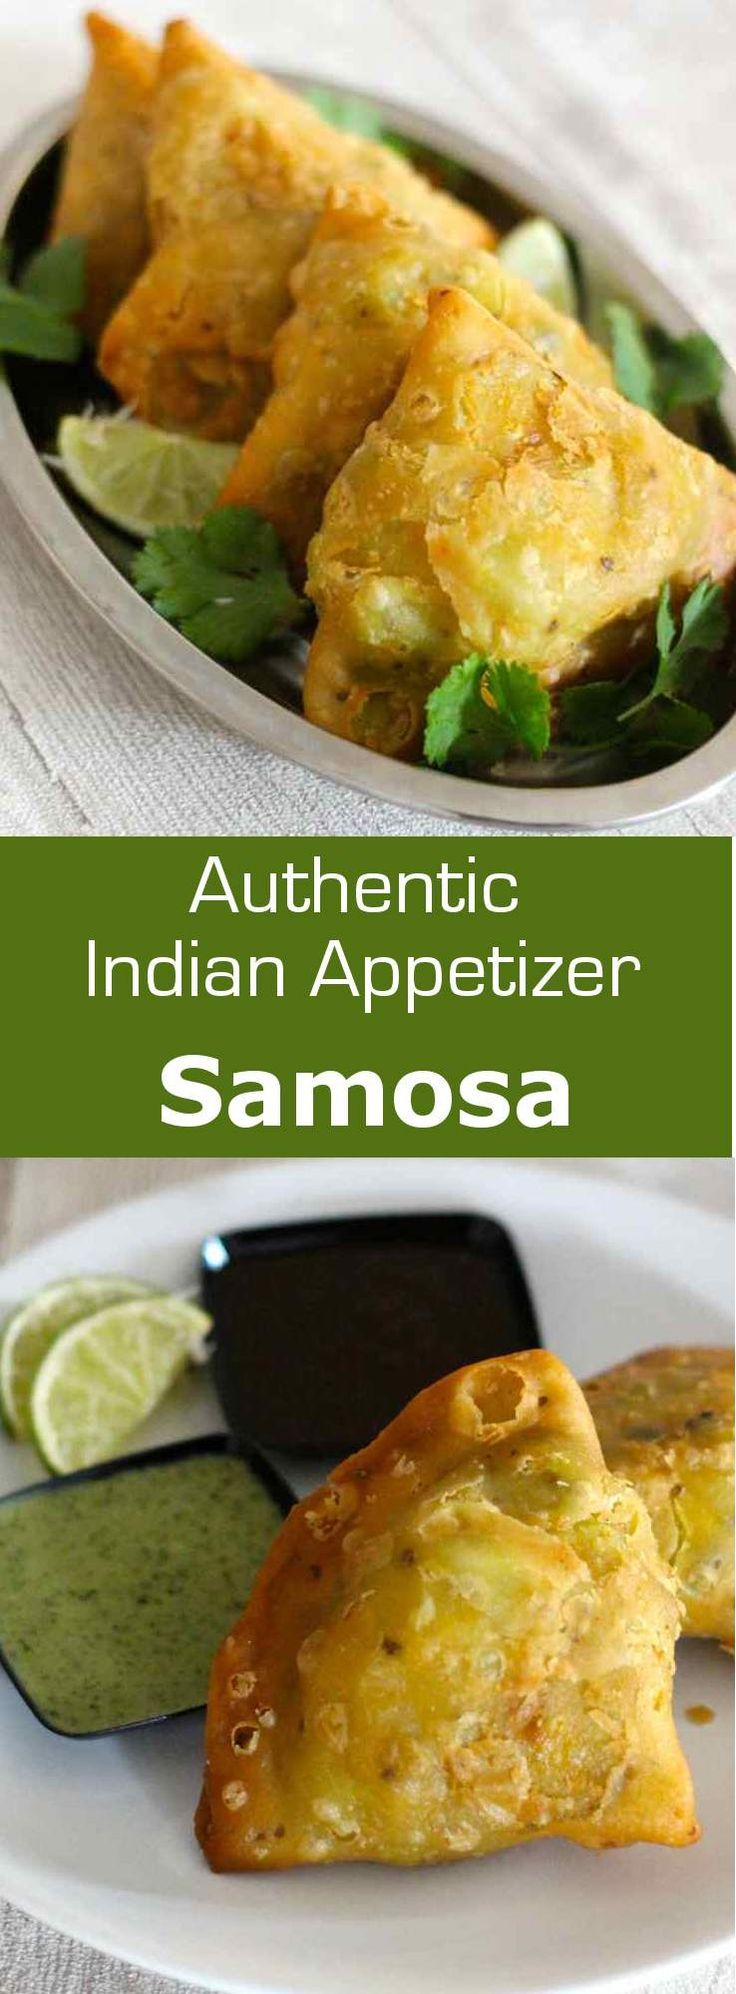 Samosa is a small triangular fried snack from northern India that is traditionally filled with vegetables and spices.